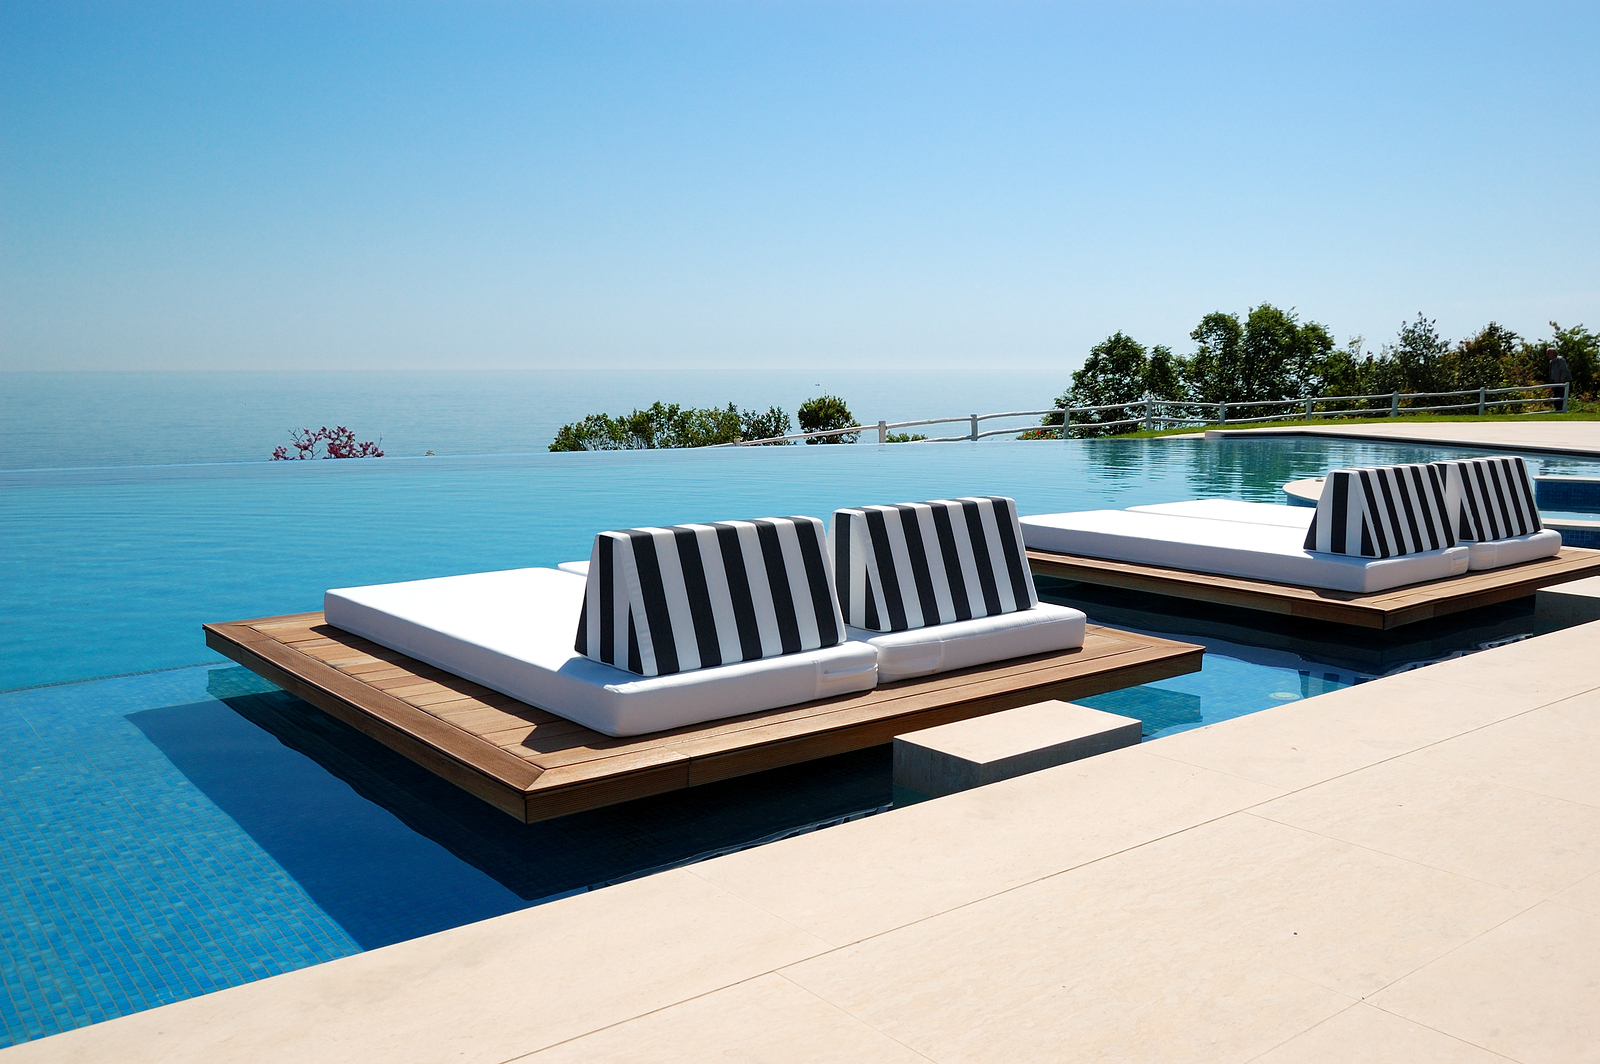 Luxe villa Infinity Swimming Pool By Beach At The Modern Luxury Hotel, Pier